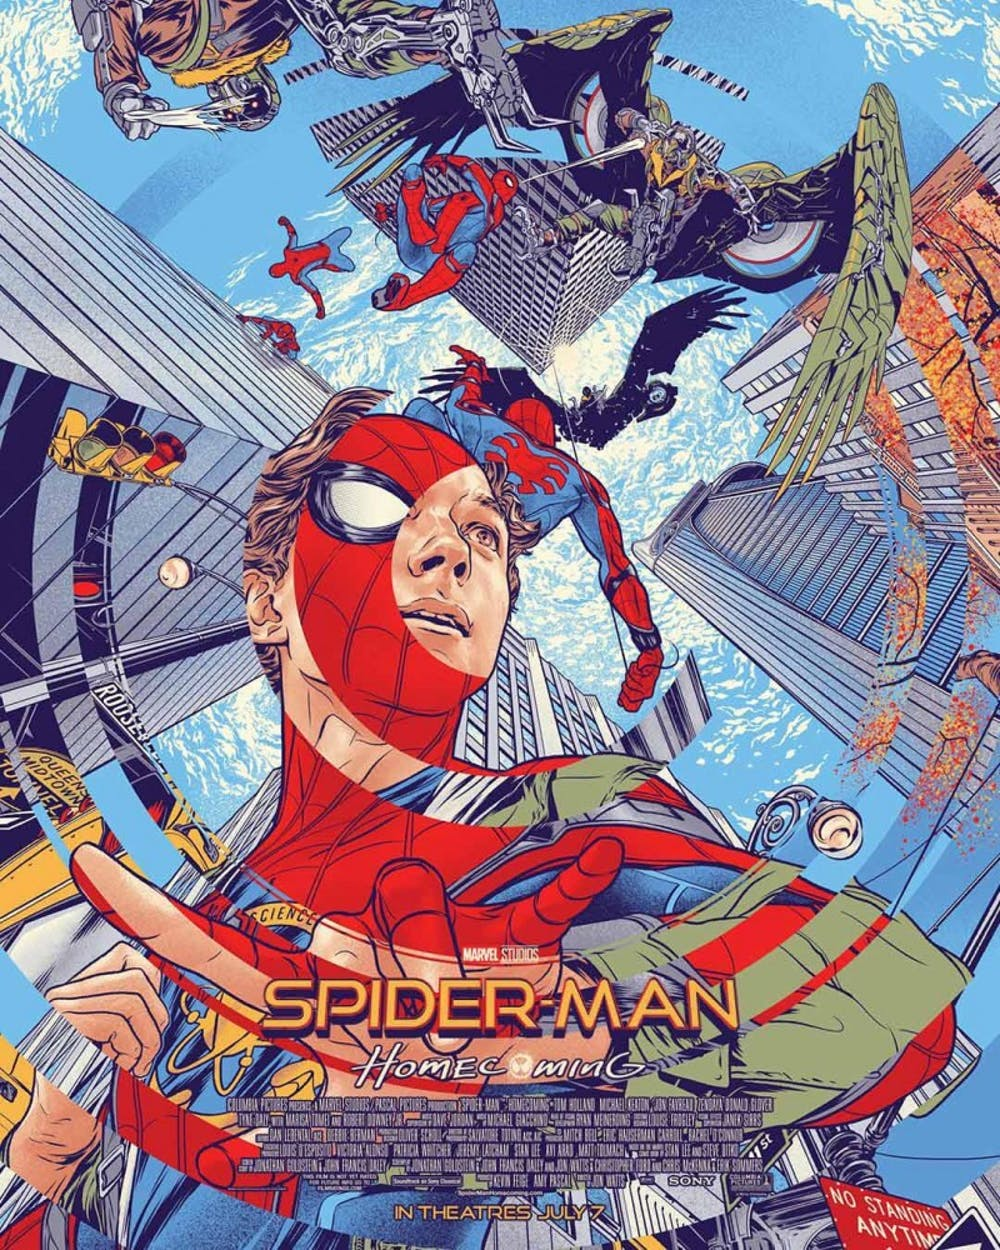 Film Review: 'Spider-Man: Homecoming' reinvents the web-slinger's movies, reboot a must-see